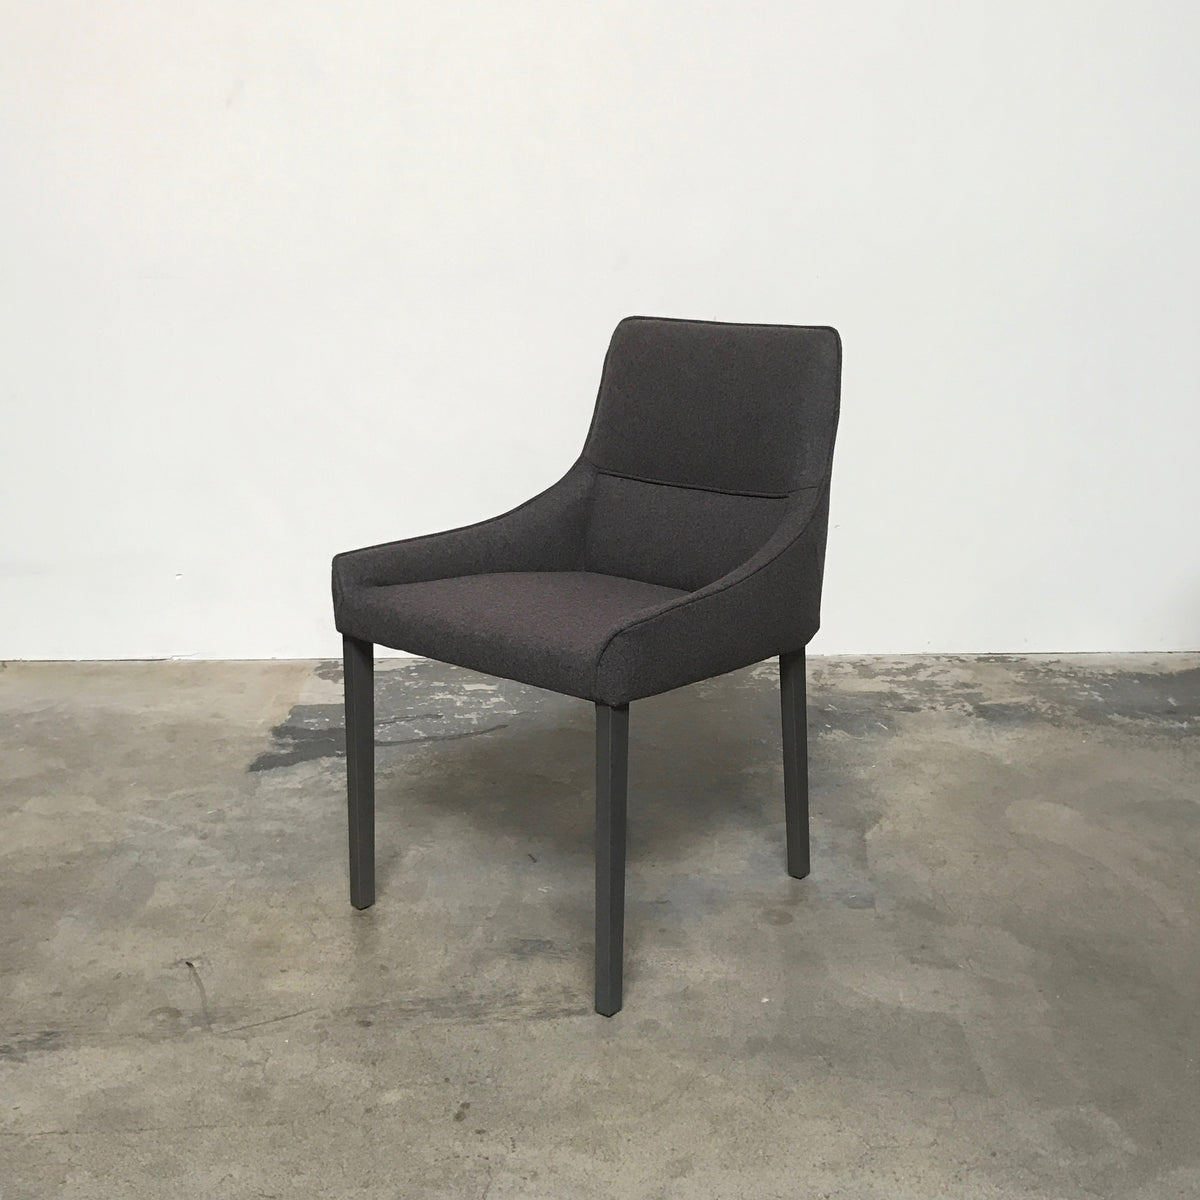 Ligne Roset Long Island Dining Chair by N. Nasraliah and C. Horner